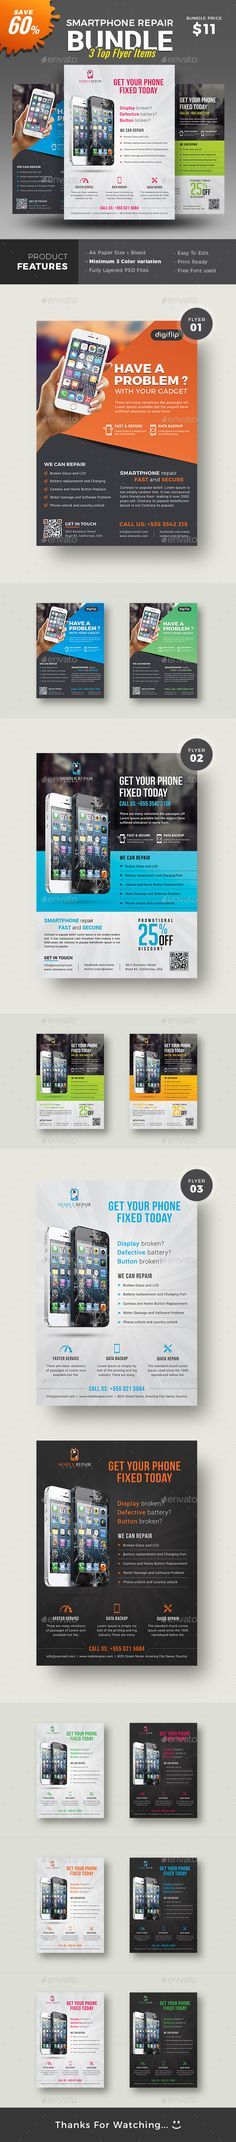 Smartphone Repair Flyer/Poster | Smartphone, Buy Smartphone And